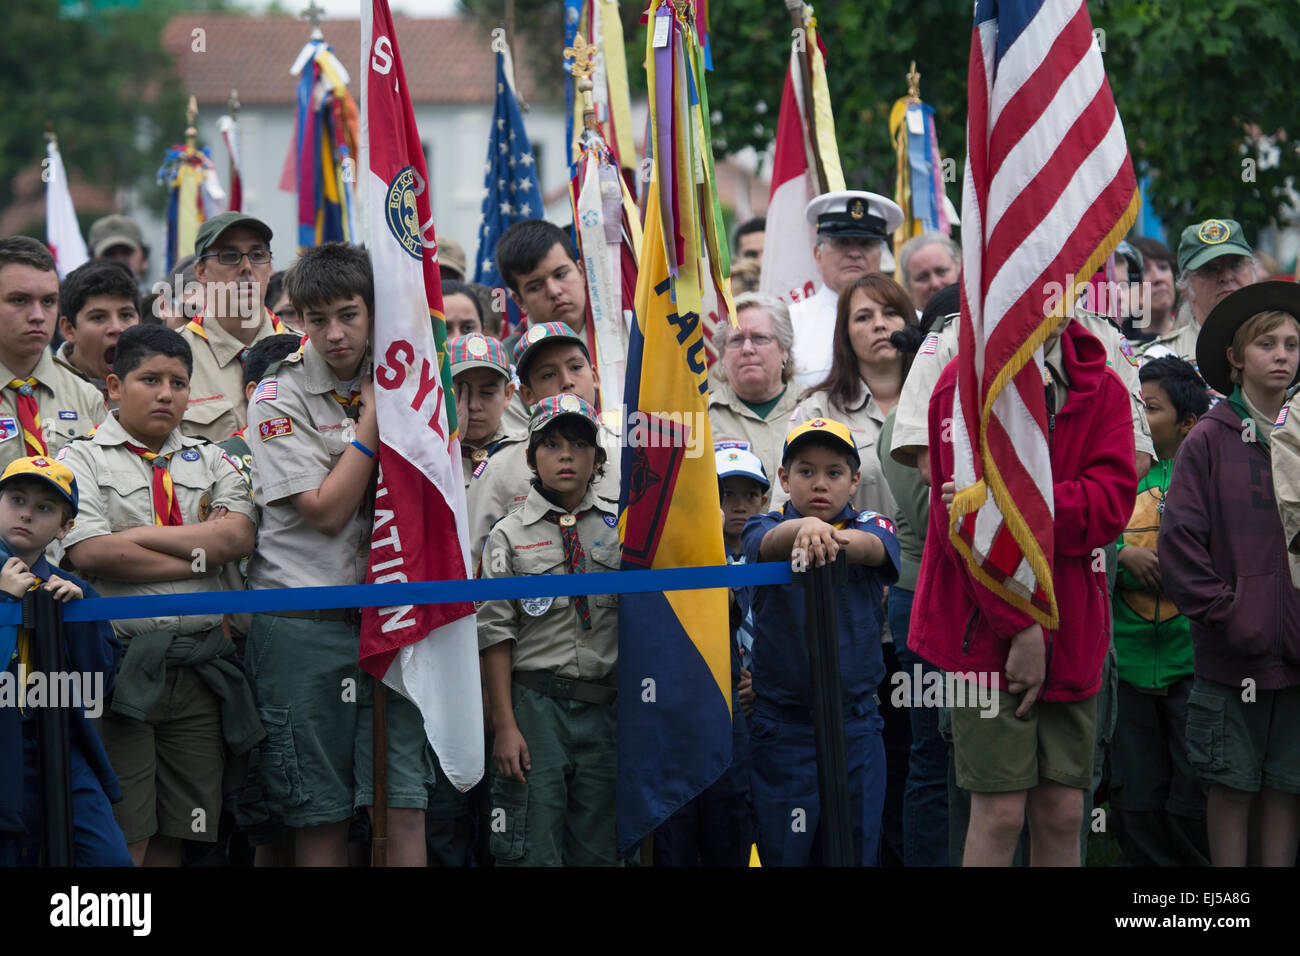 Boyscout Faces and US Flags at solemn 2014 Memorial Day Event, Los Angeles National Cemetery, California, USA - Stock Image